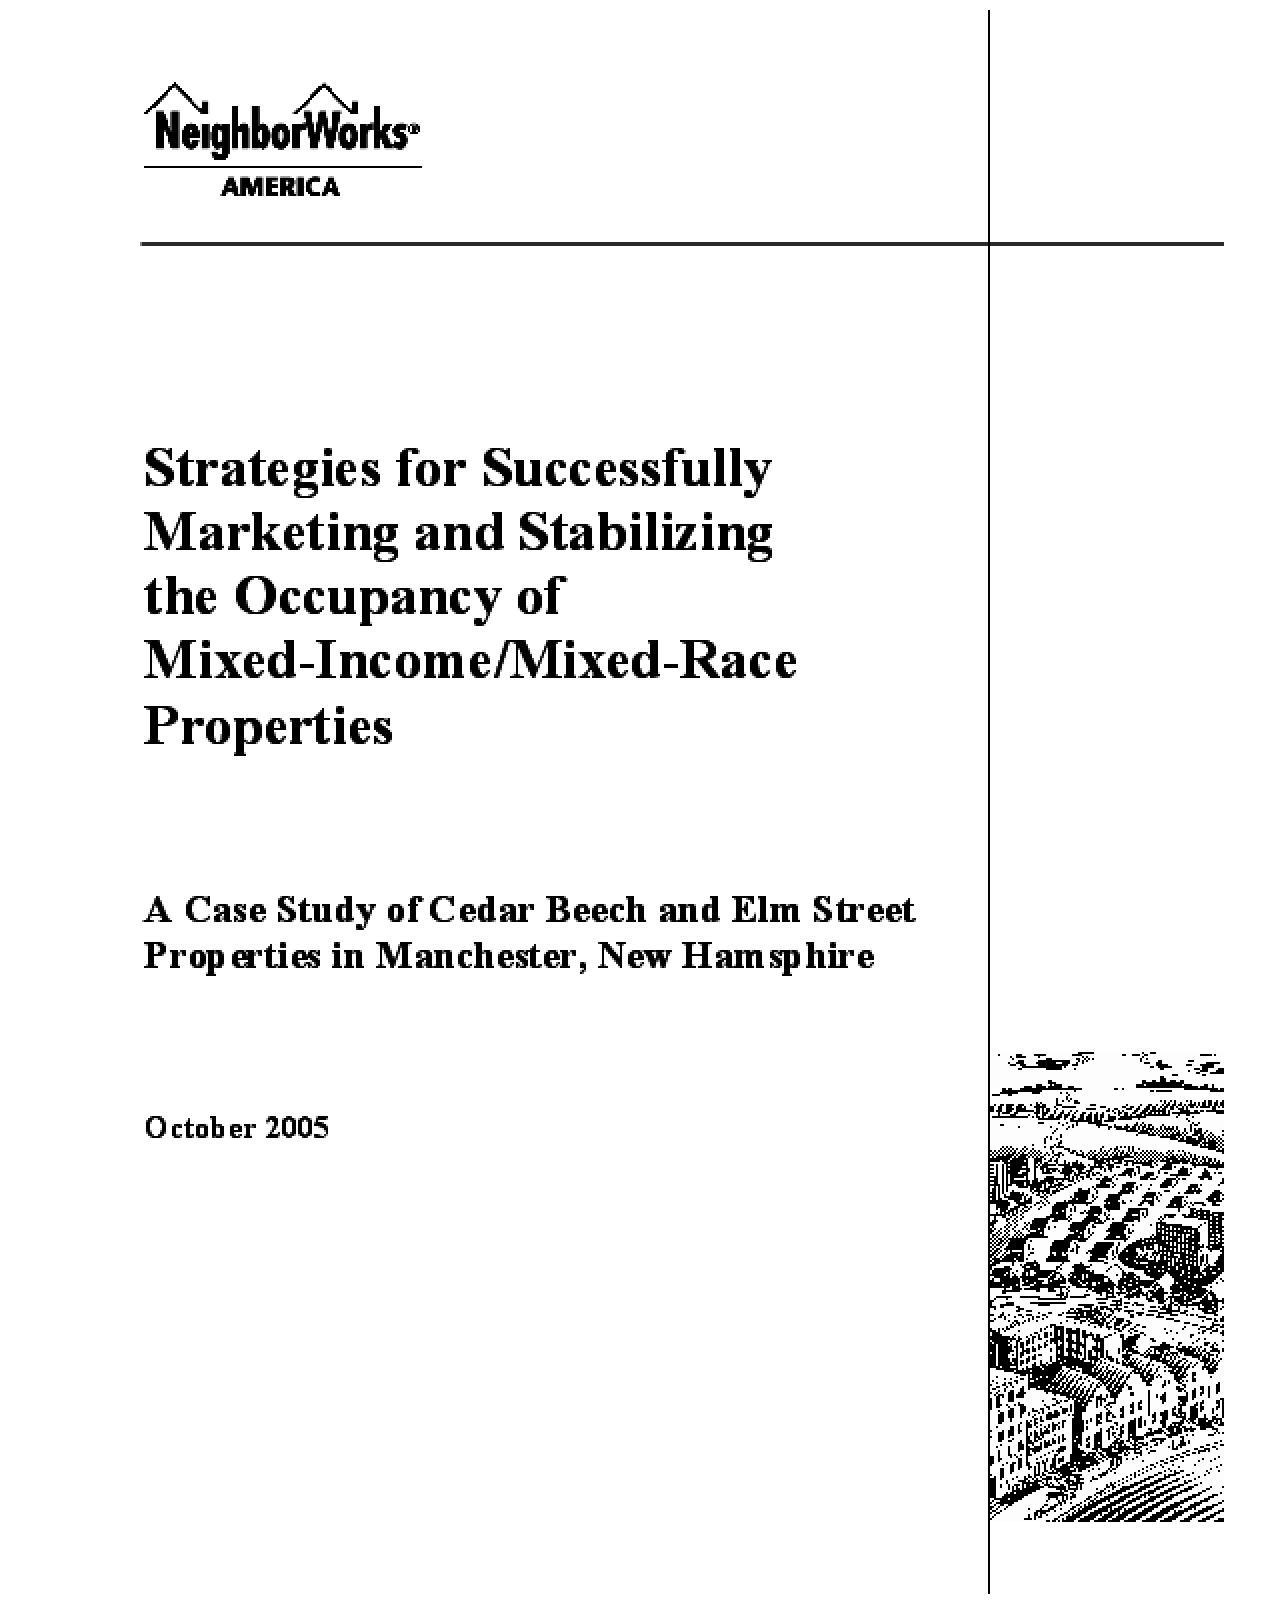 Strategies for Successfully Marketing and Stabilizing the Occupancy of Mixed-Income/Mixed-Race Properties: A Case Study of Cedar Beech and Elm Street Properties in Manchester, New Hamsphire